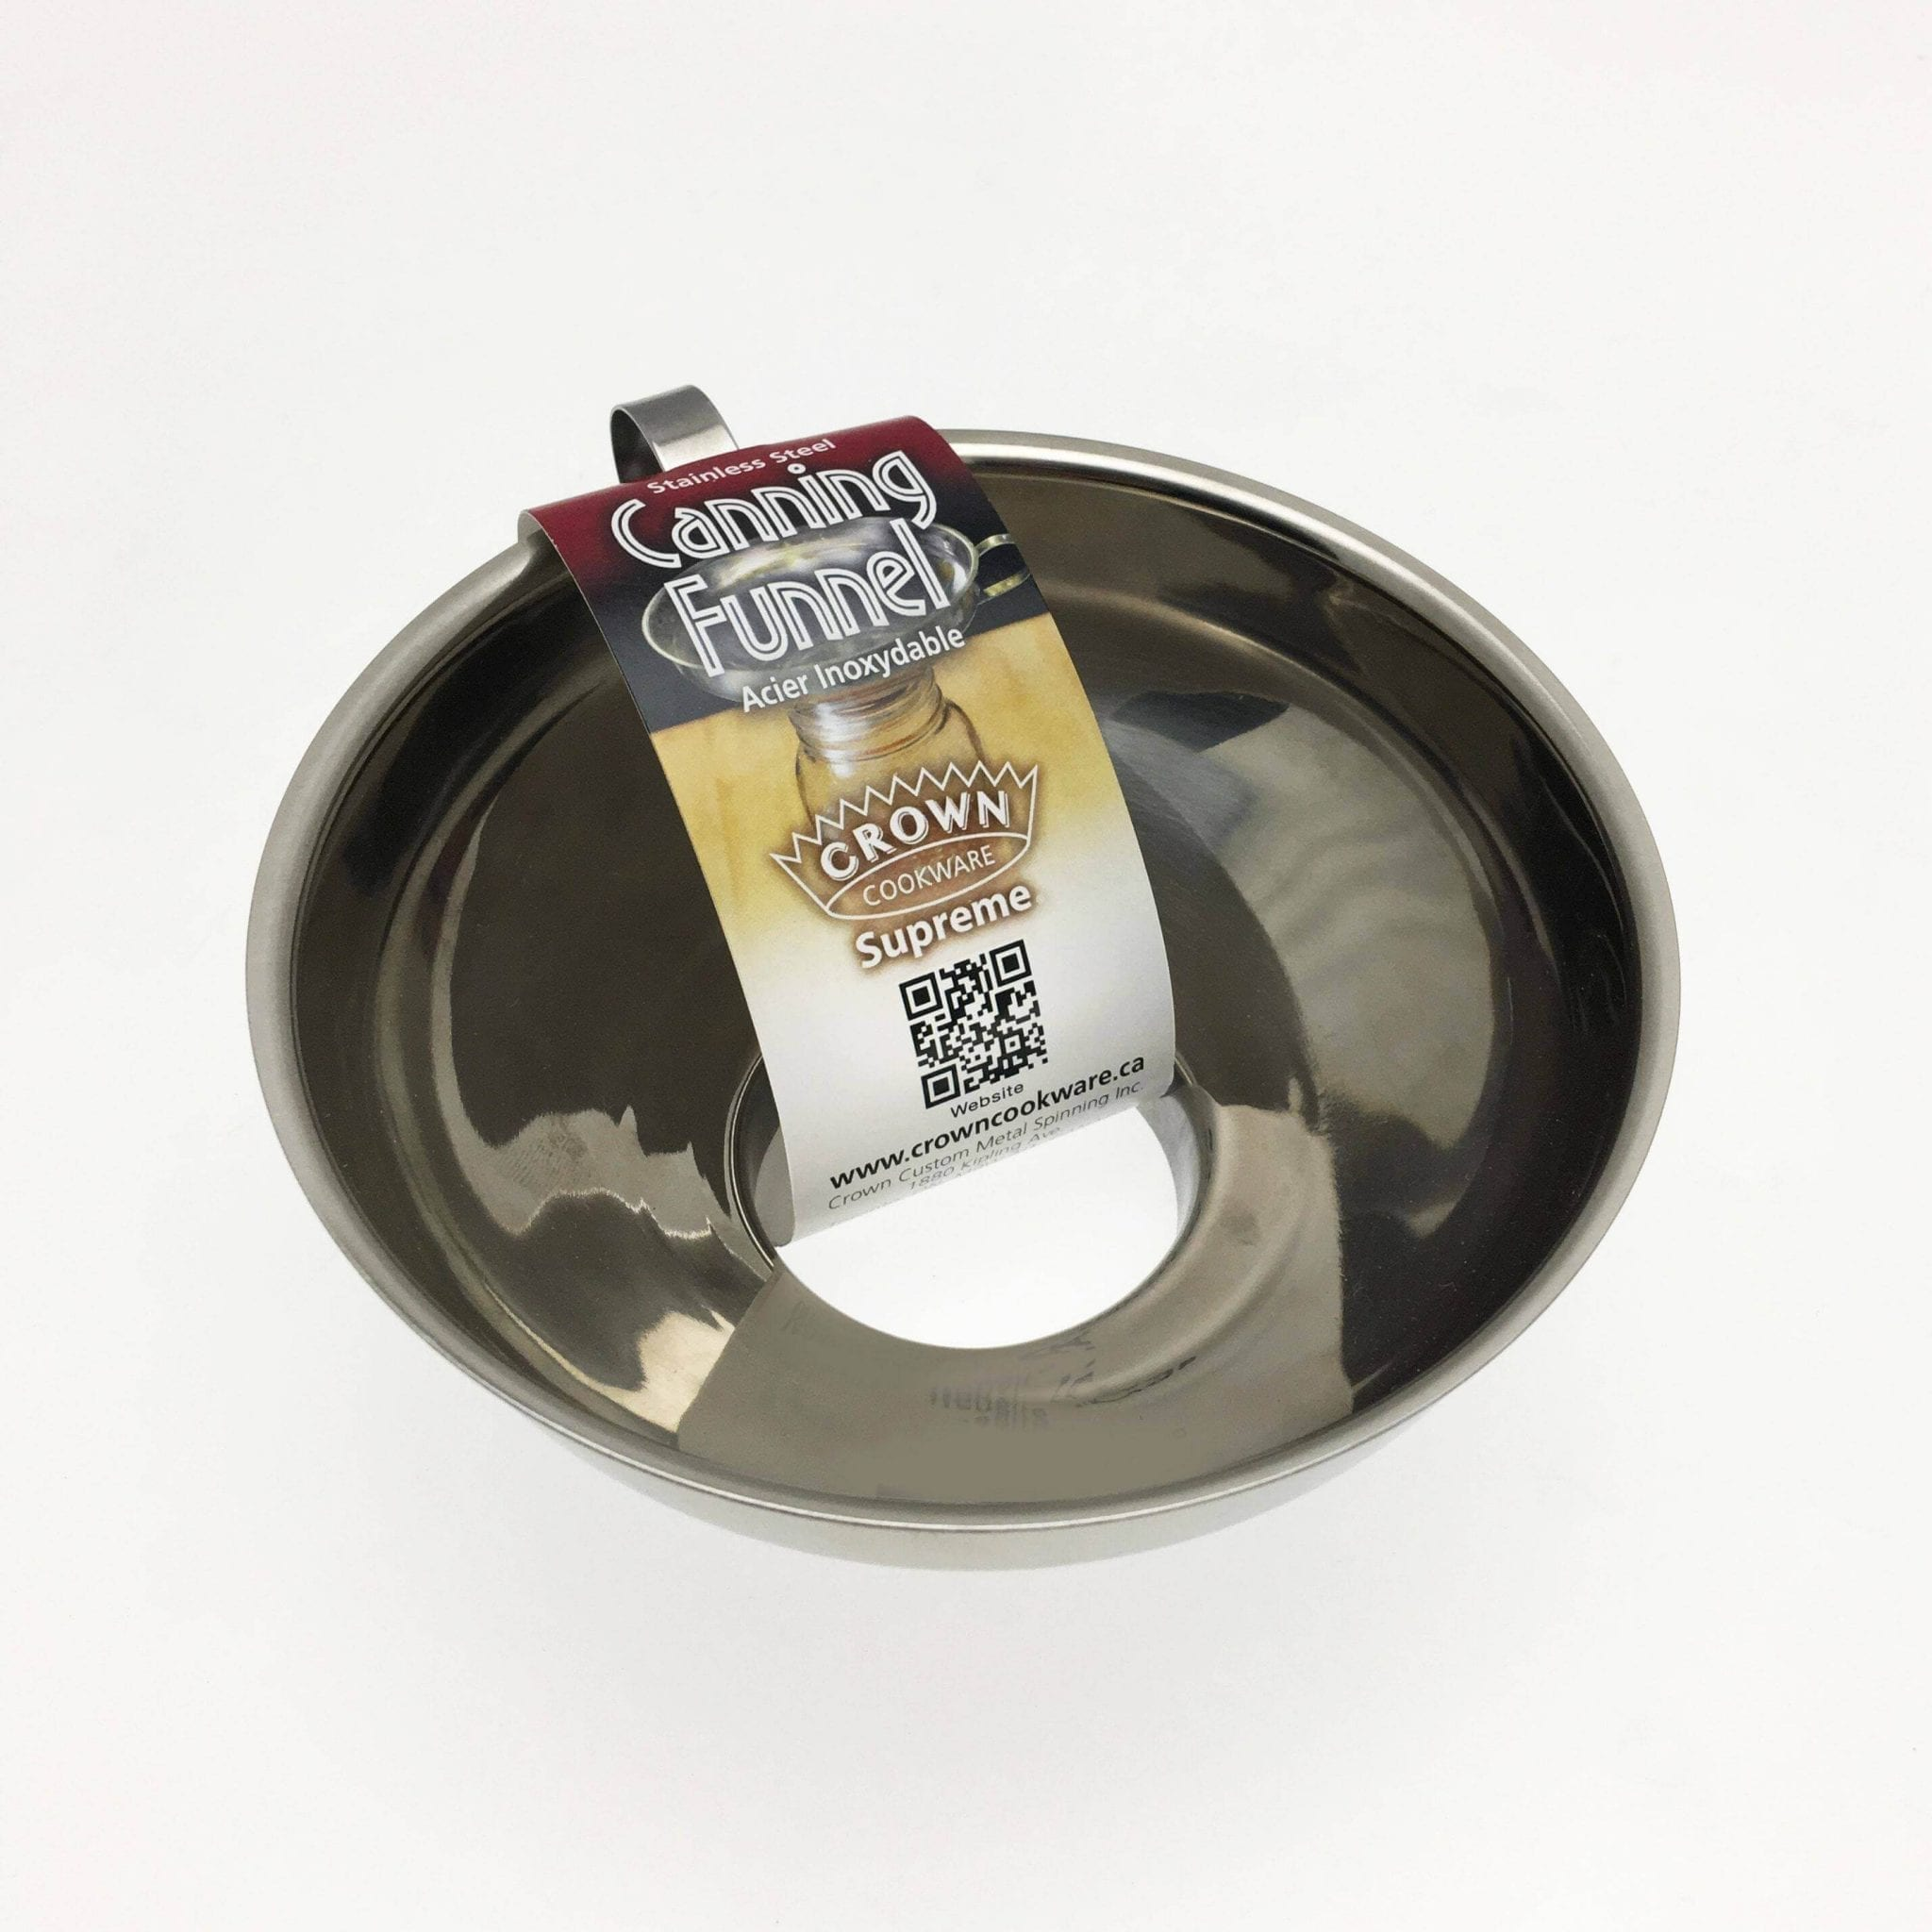 STAINLESS STEEL CANNING FUNNEL